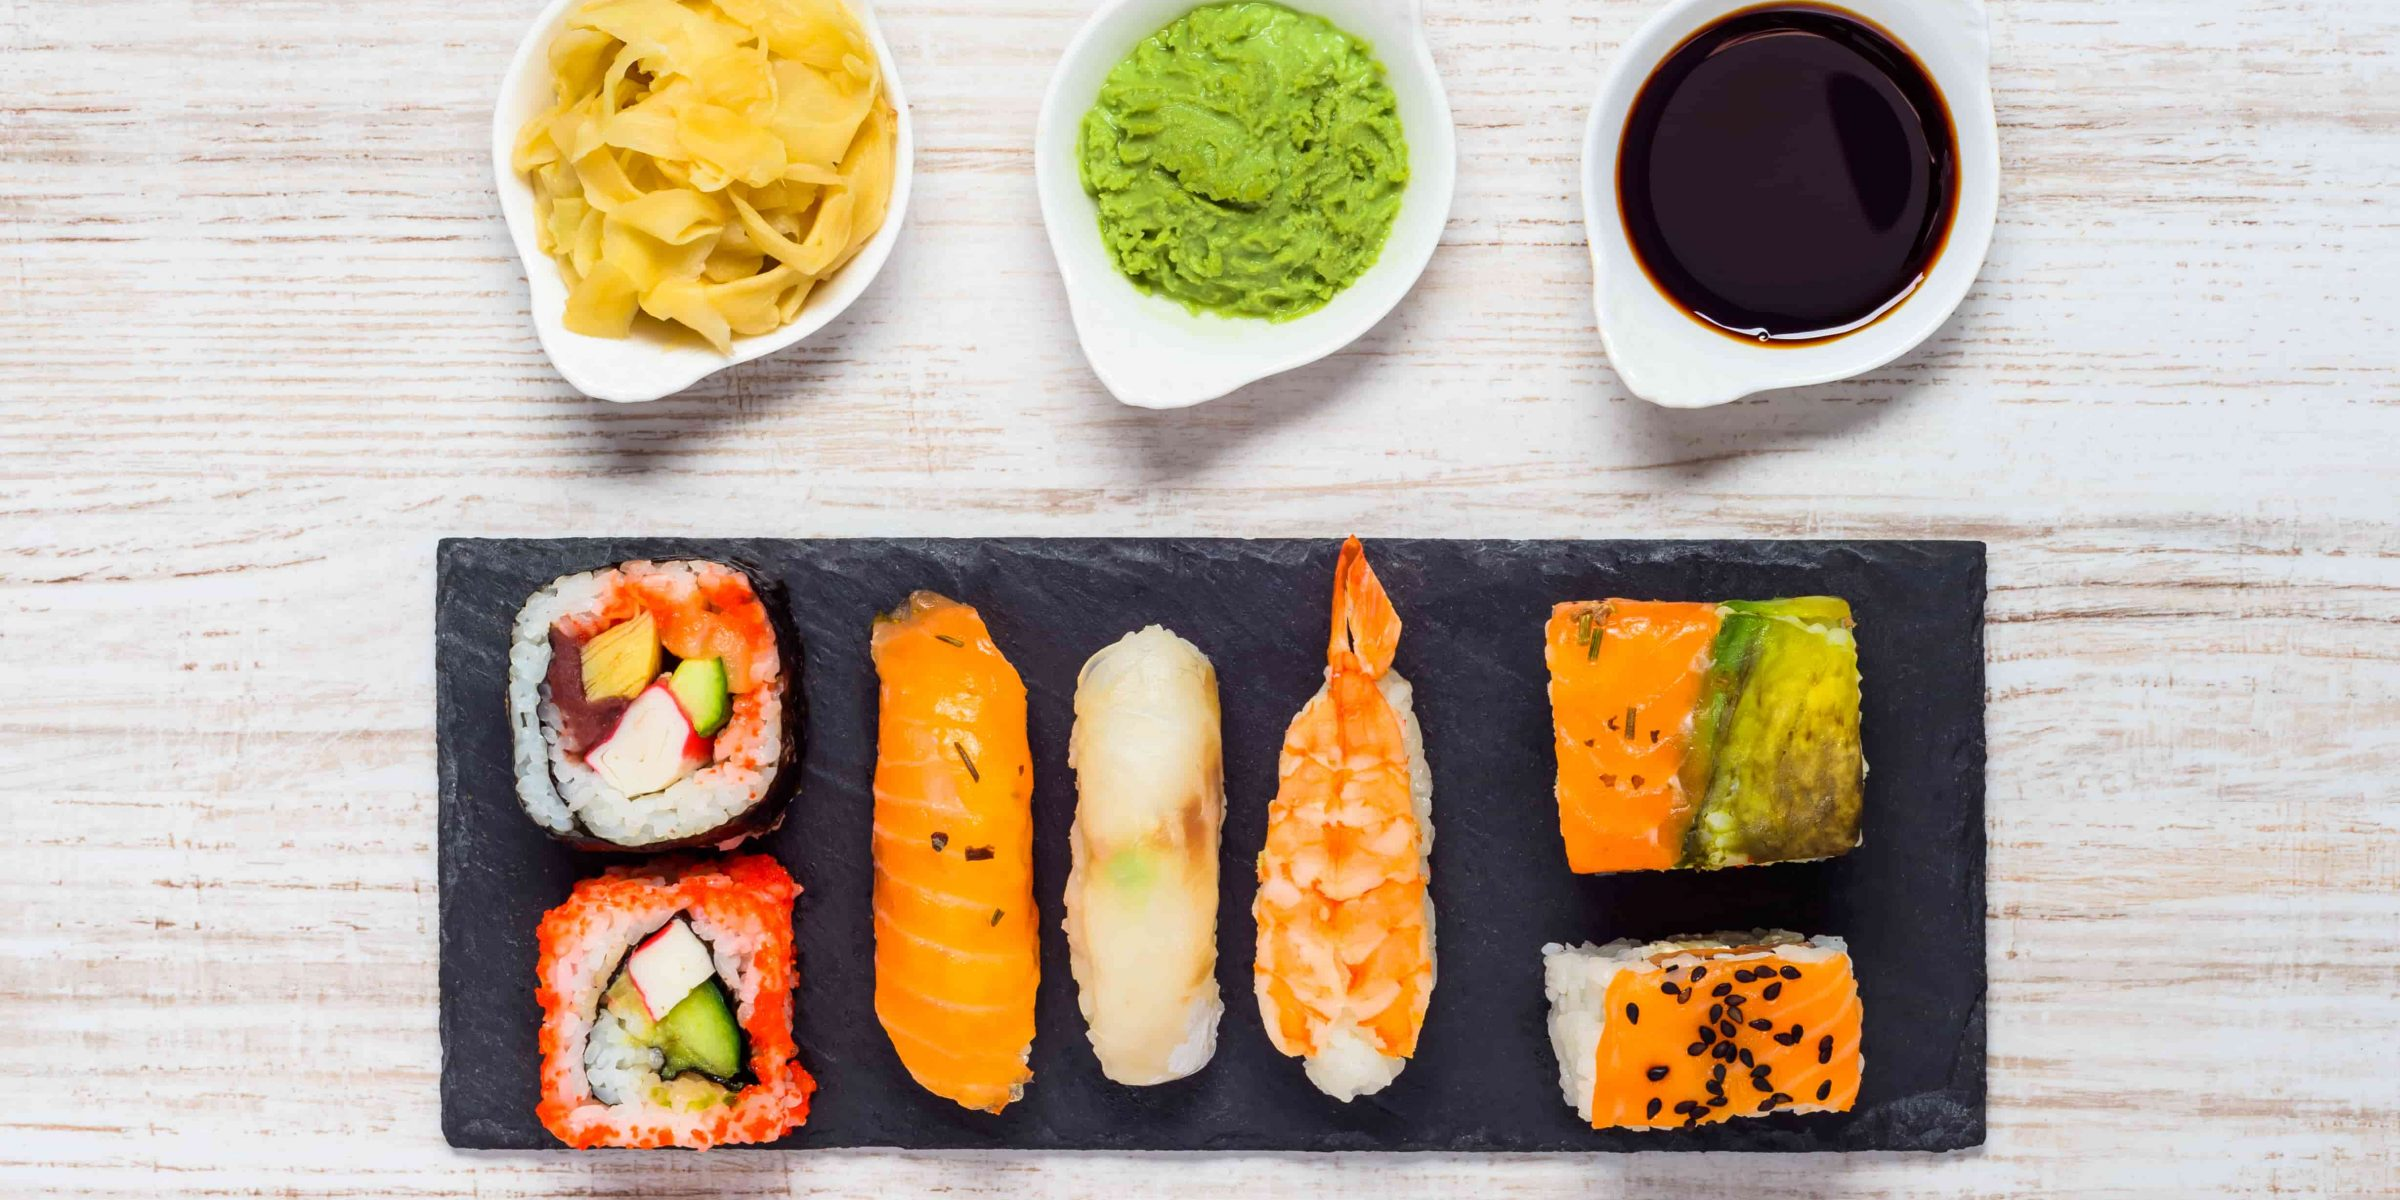 sushi-with-wasabi-and-ginger-P7Q46YT-min.jpg